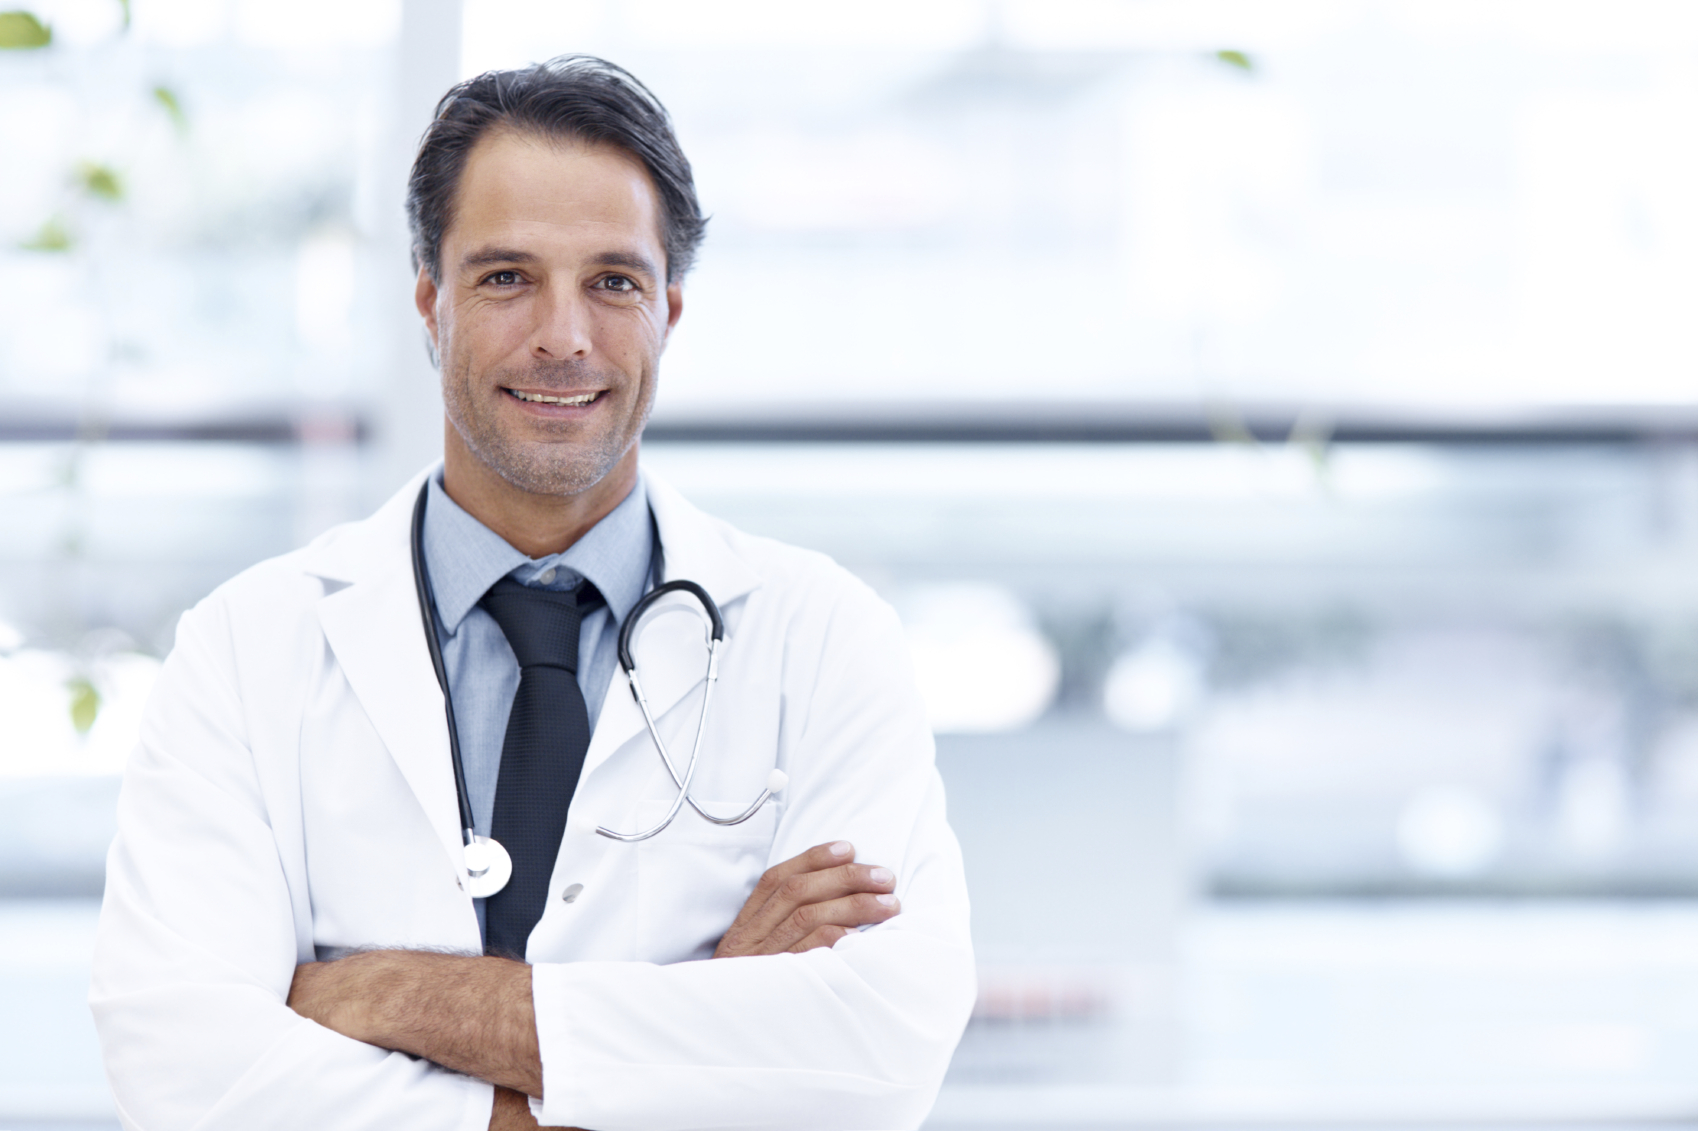 For Doctors - Screen high risk patients and prescribe immediate treatment based on fresh data. Avoid sending your patients out for unnecessary lab tests.Improve the monitoring of relevant conditions including;Iron deficiency anemia, hemochromatosis, Crohn's Disease, IBS, Bariatric surgery and Cancer remission.